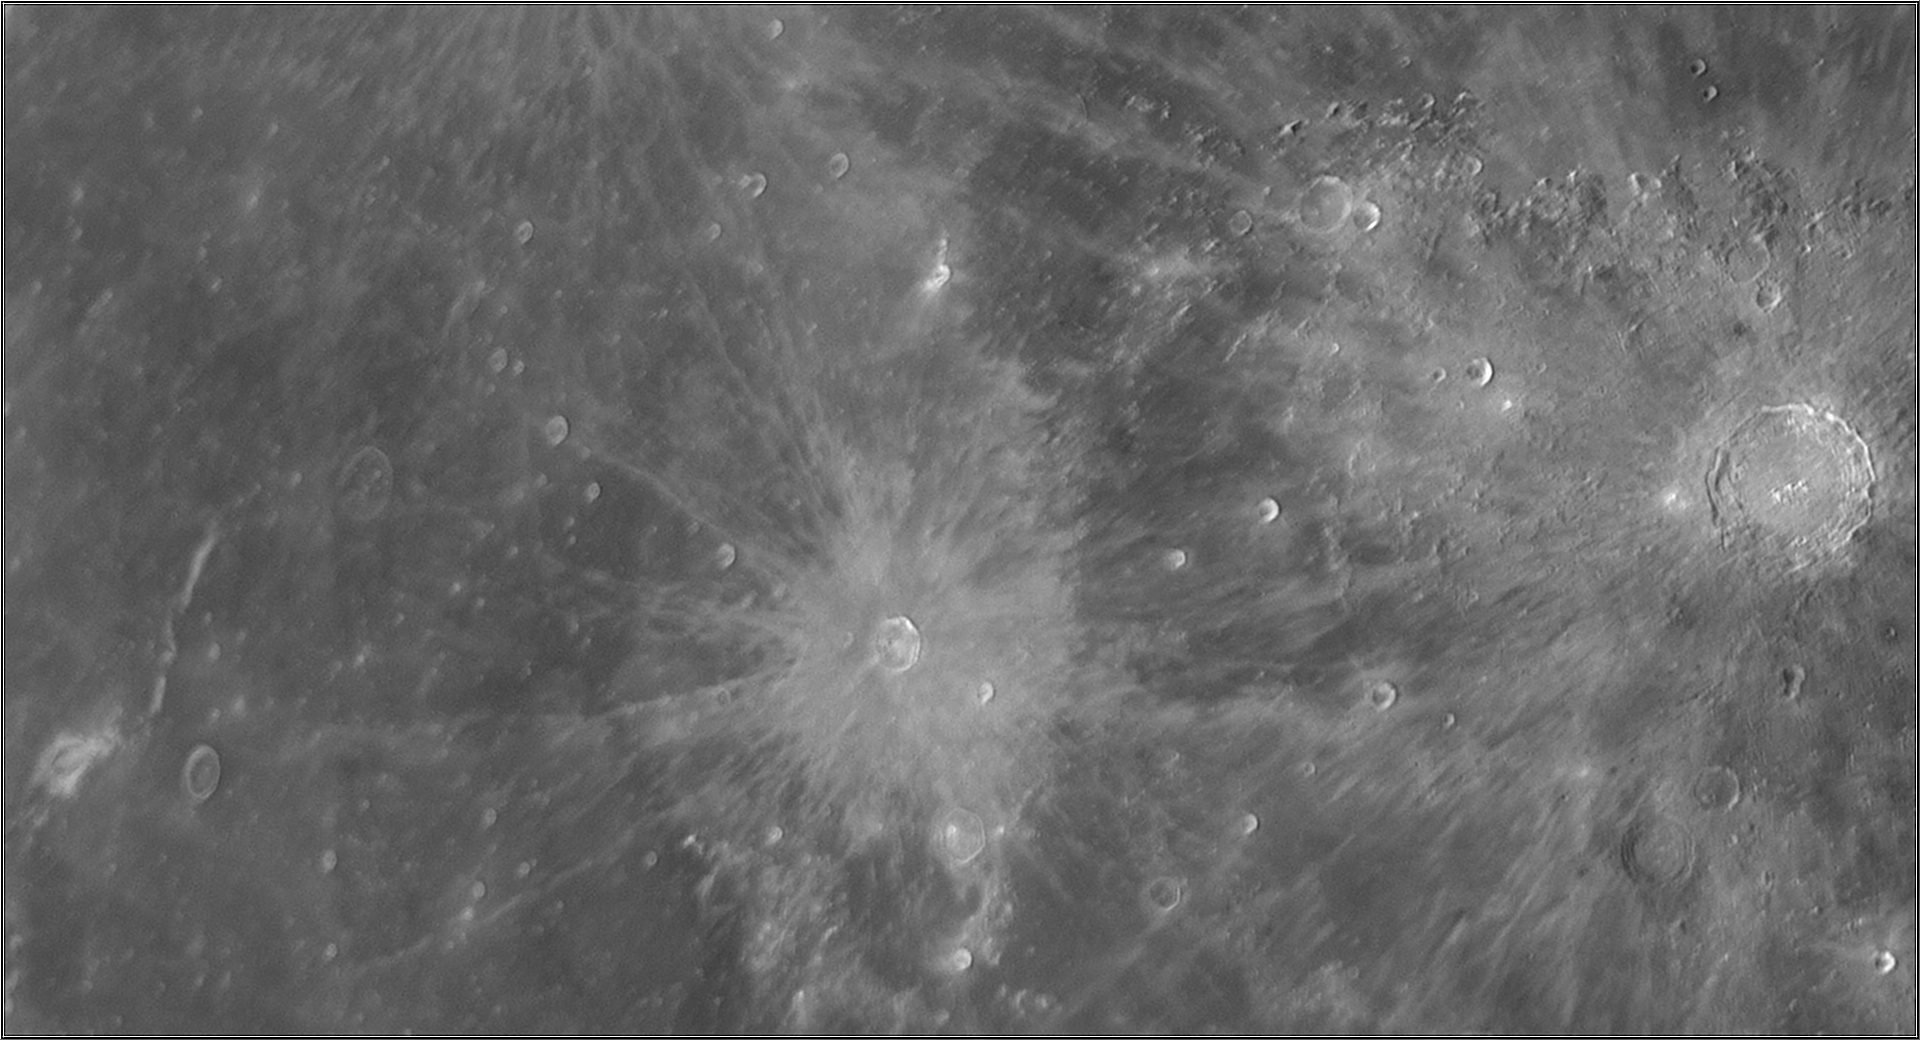 5dd1bed9ae041_Moon_074552_171119_ZWOASI290MM_IR_650nm_AS_P30_lapl4_ap1045.jpg.a85ad9ff180d73c4be25eea1d04c2d6b.jpg